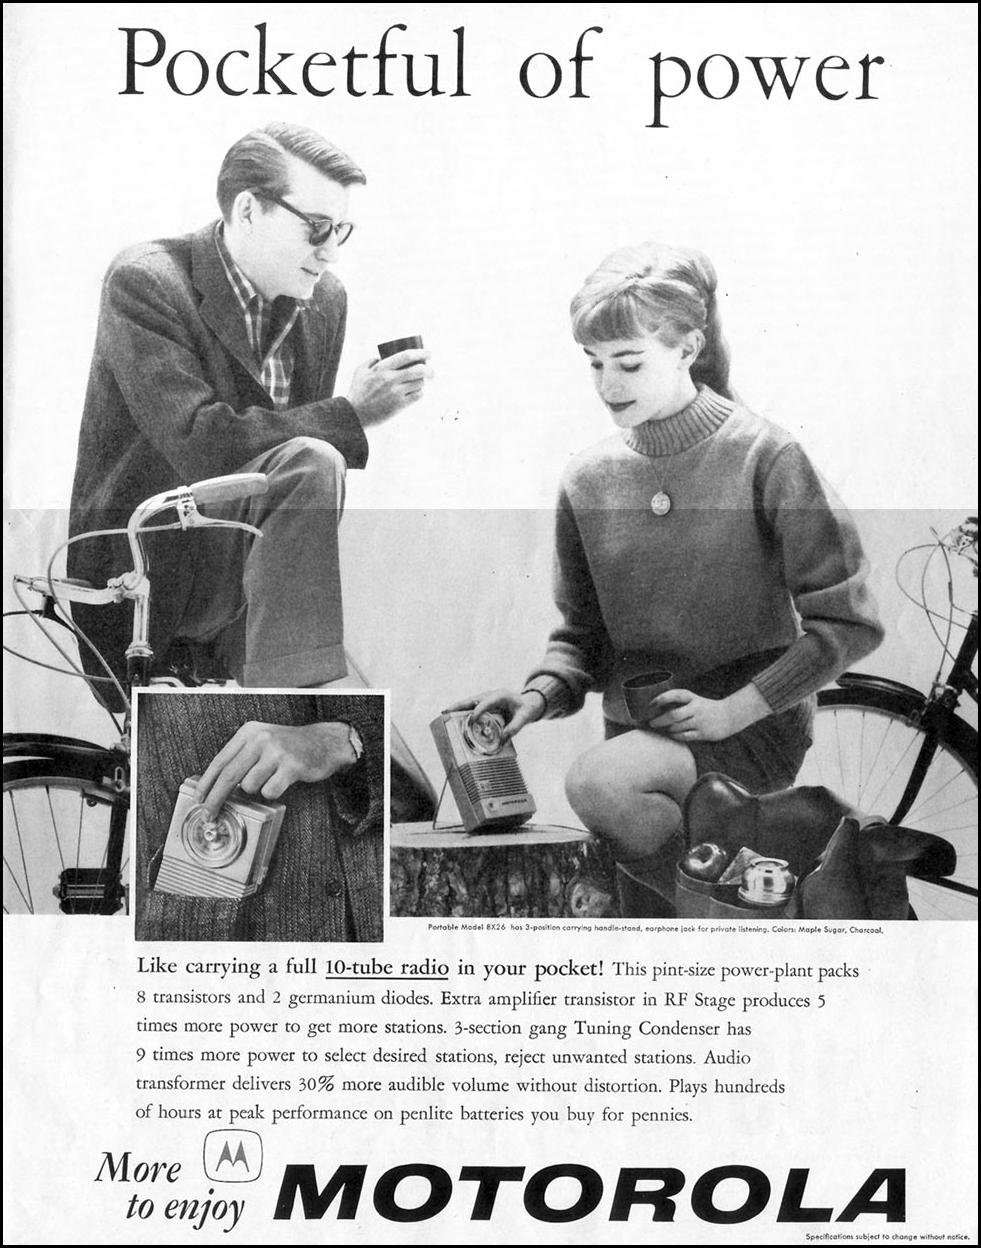 MOTOROLA TRANSISTOR RADIO SATURDAY EVENING POST 05/02/1959 p. 89